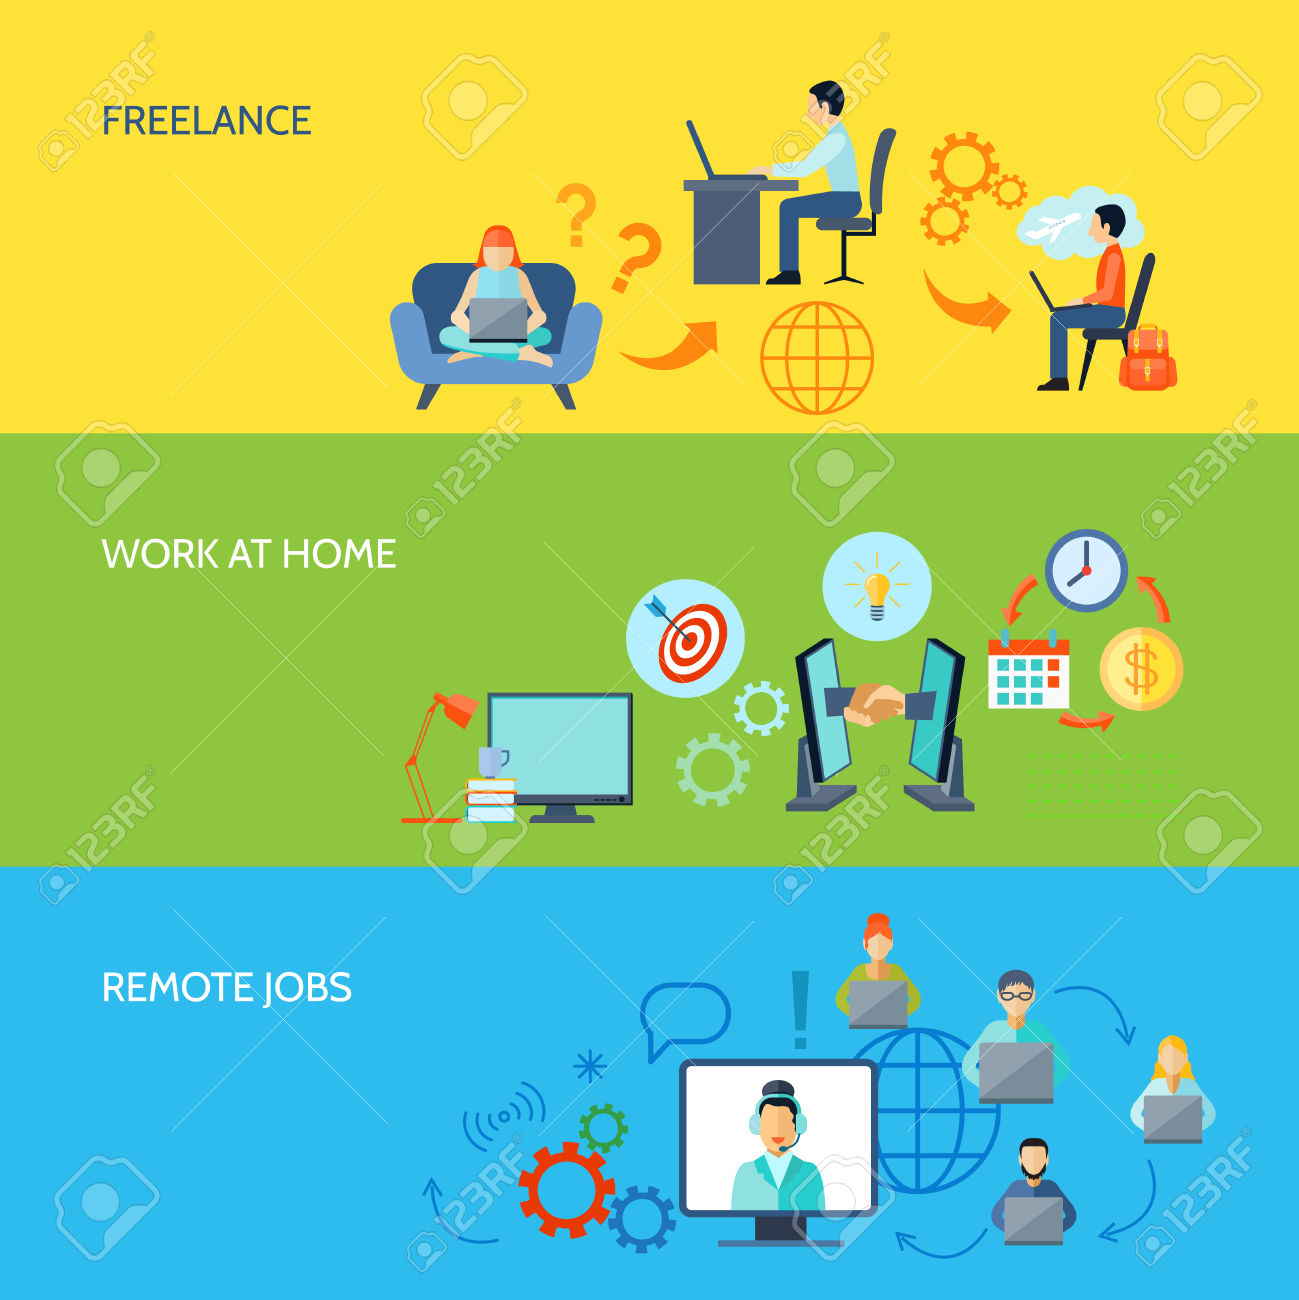 Work at home clipart banner clipground for Freelance web design jobs from home